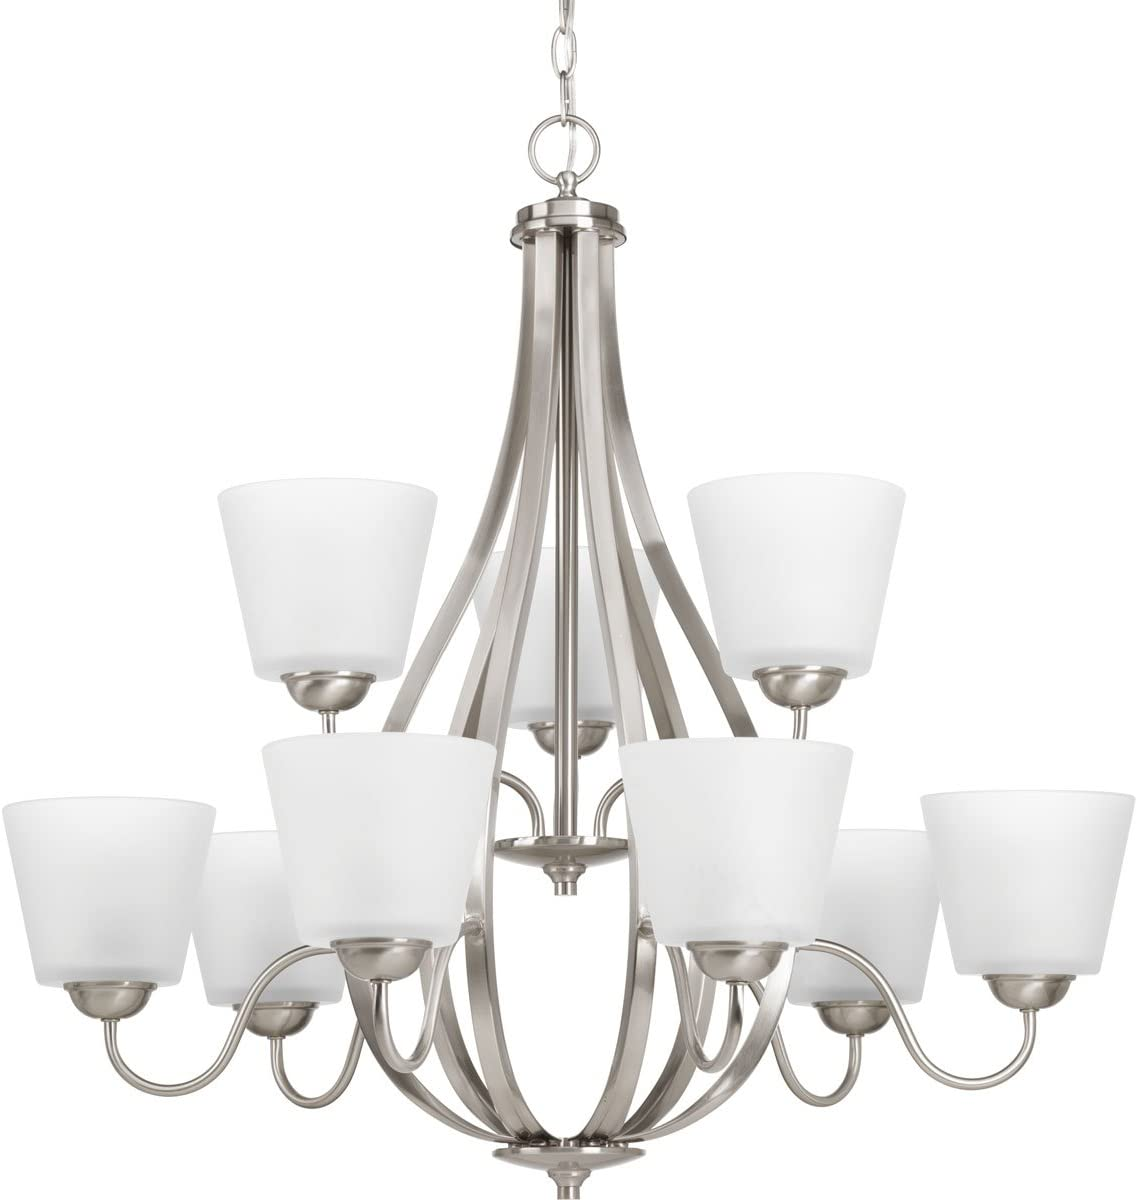 Progress Lighting P4747-09 Transitional Nine Light Chandelier from Arden Collection in Pwt, Nckl, B S, Slvr. Finish, Brushed Nickel